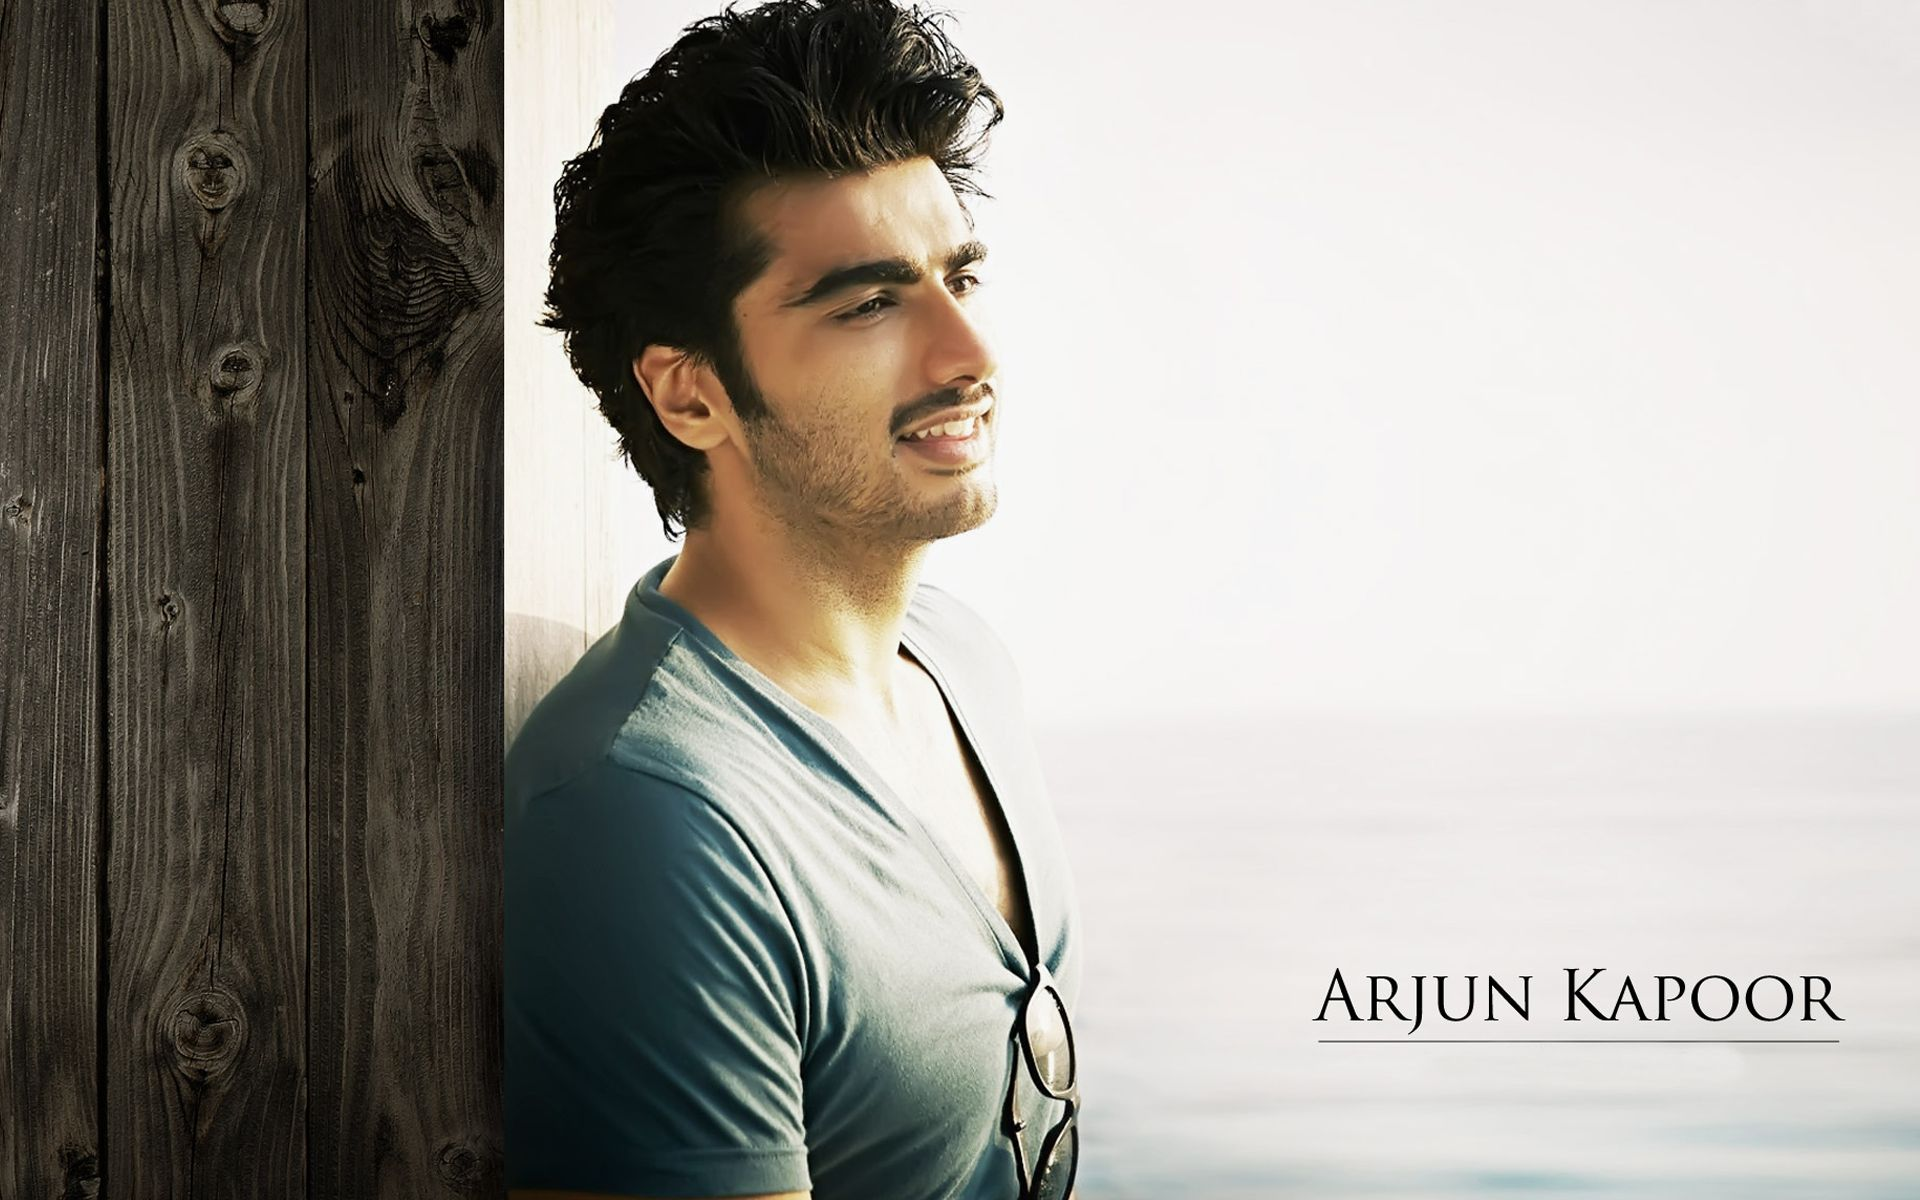 arjun kapoor hd wallpapers download Arjun kapoor Arjun 1920x1200